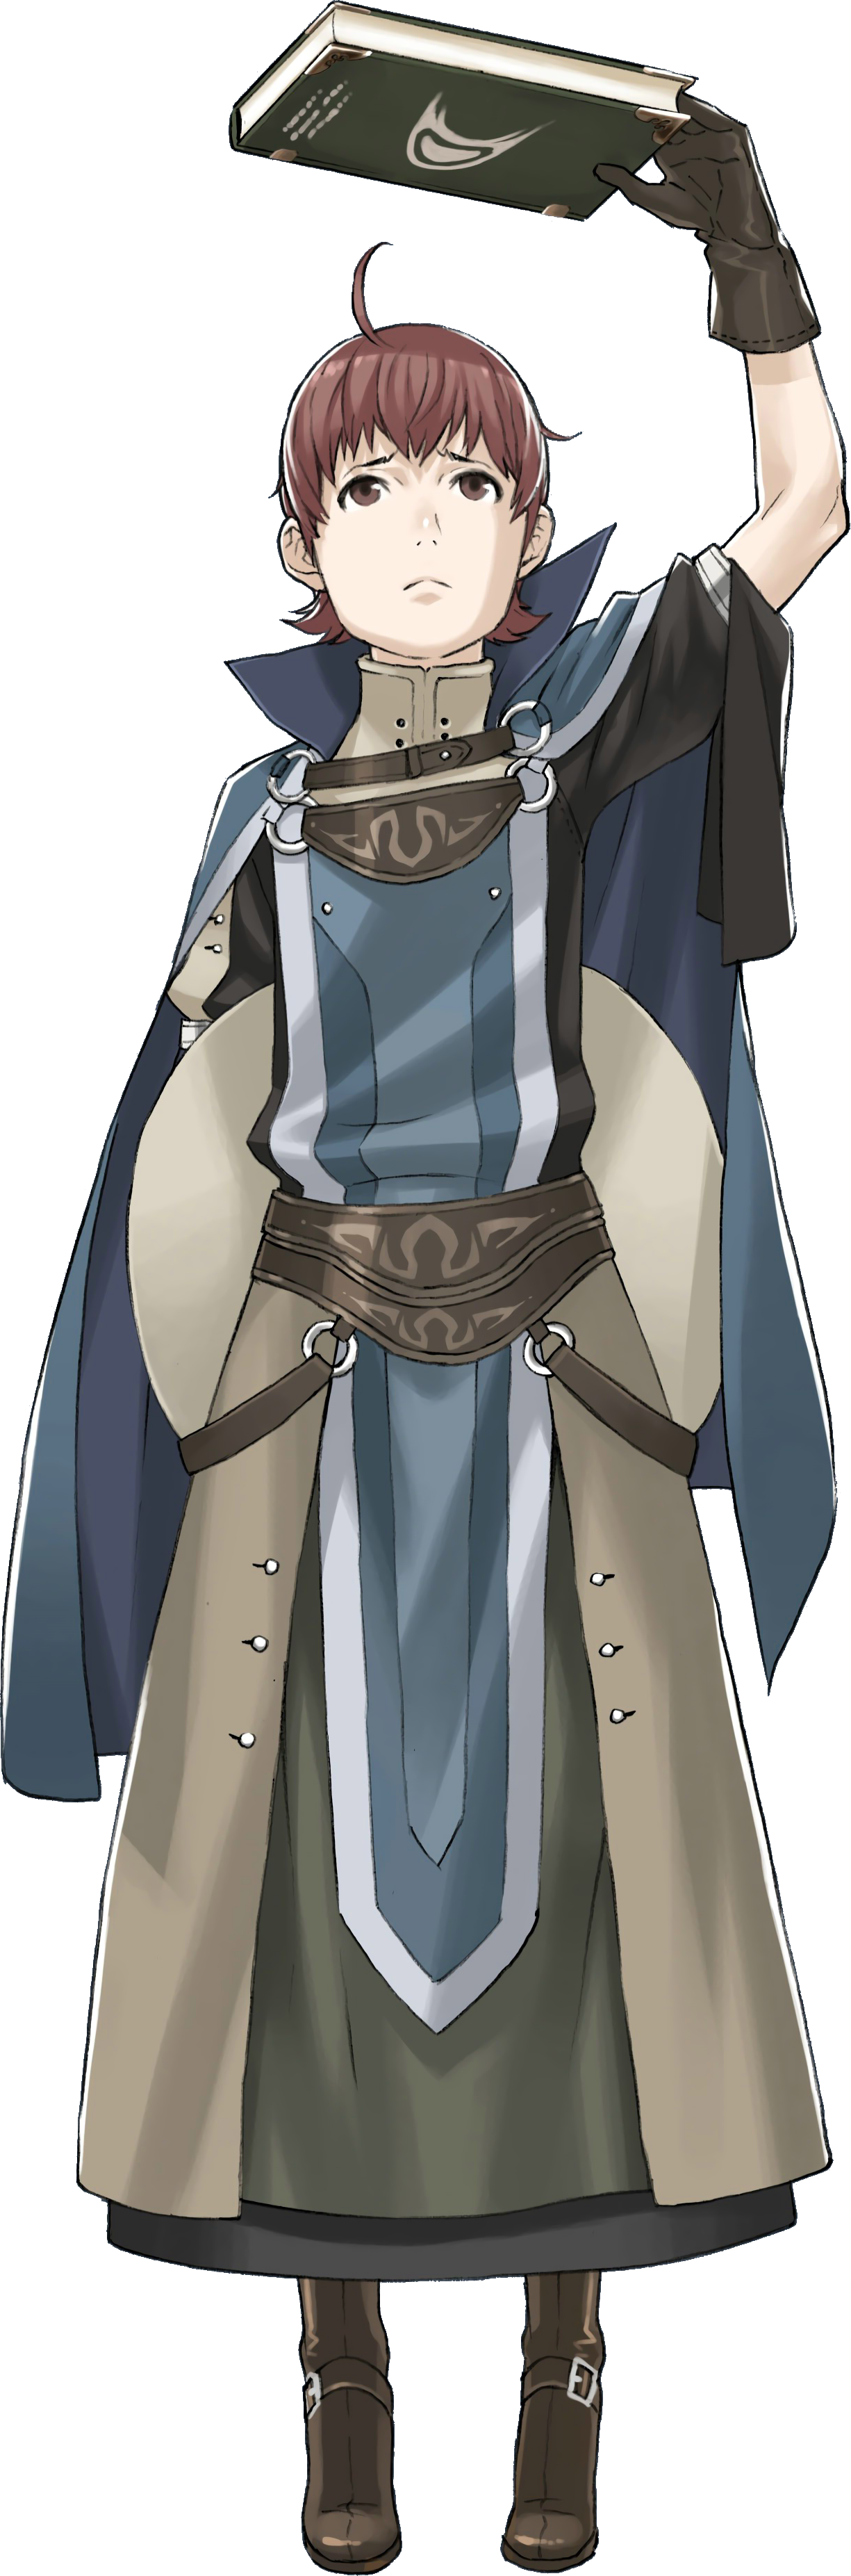 Ricken | Fire Emblem Wiki | FANDOM powered by Wikia